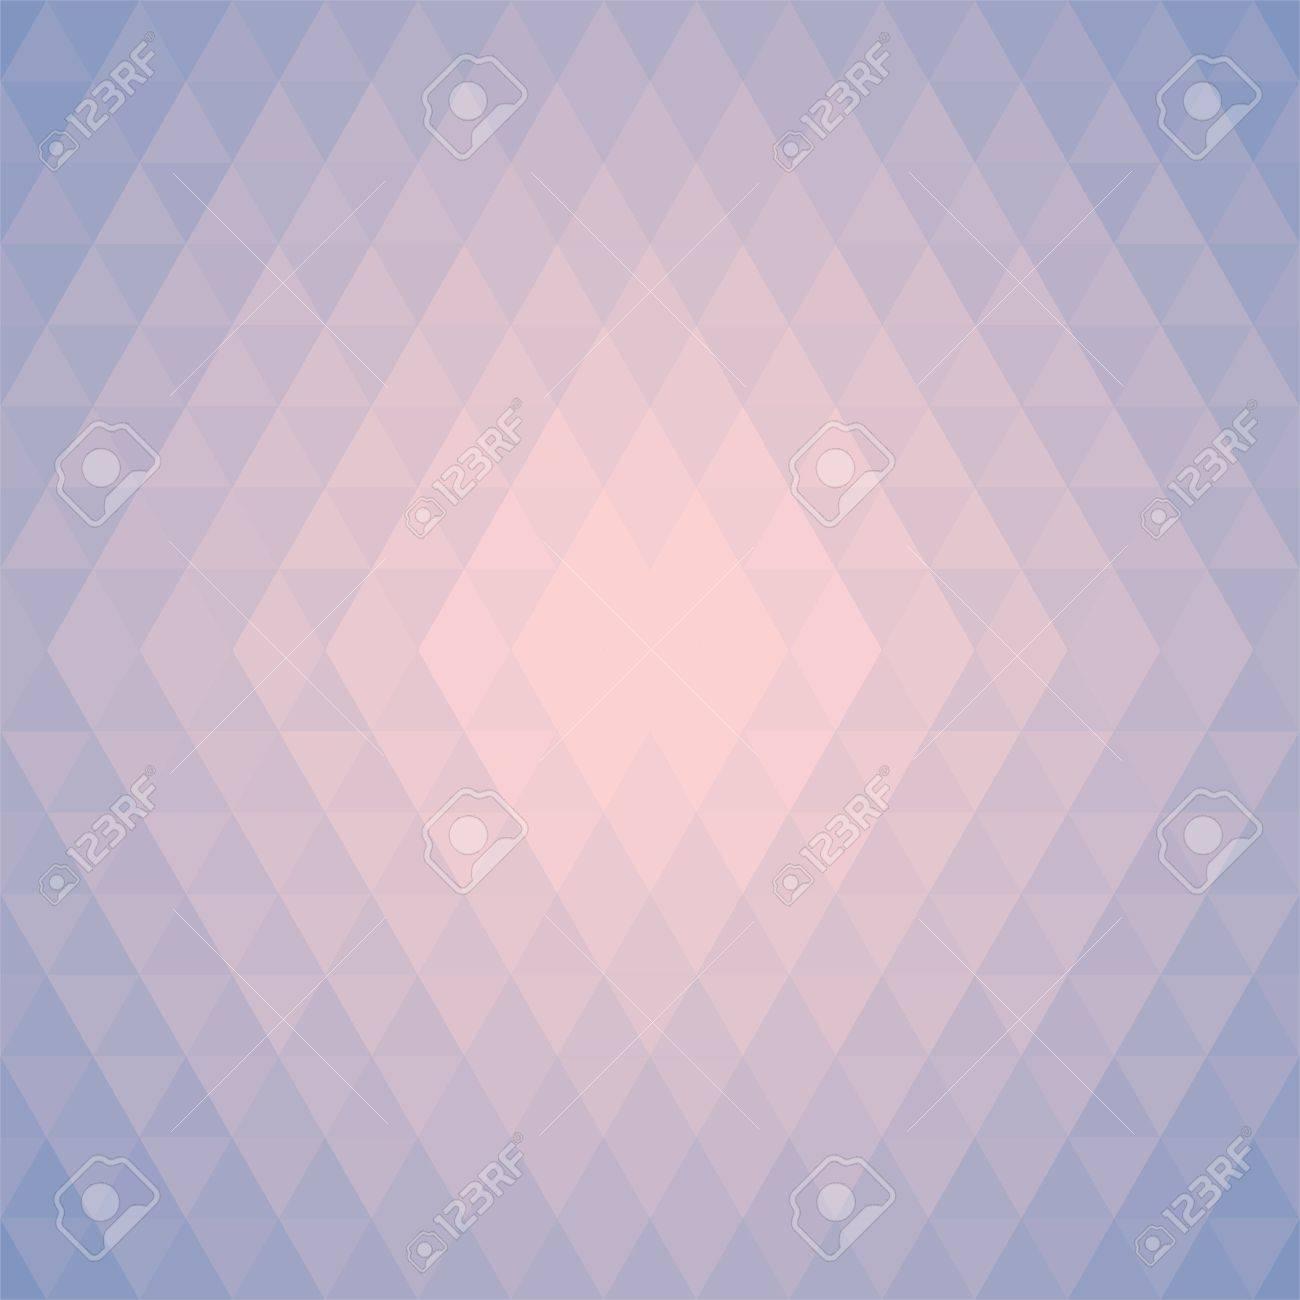 Stylish Pattern, Background Made Of Triangles In Trendy Colors Pink, Sky  Blue, Rose